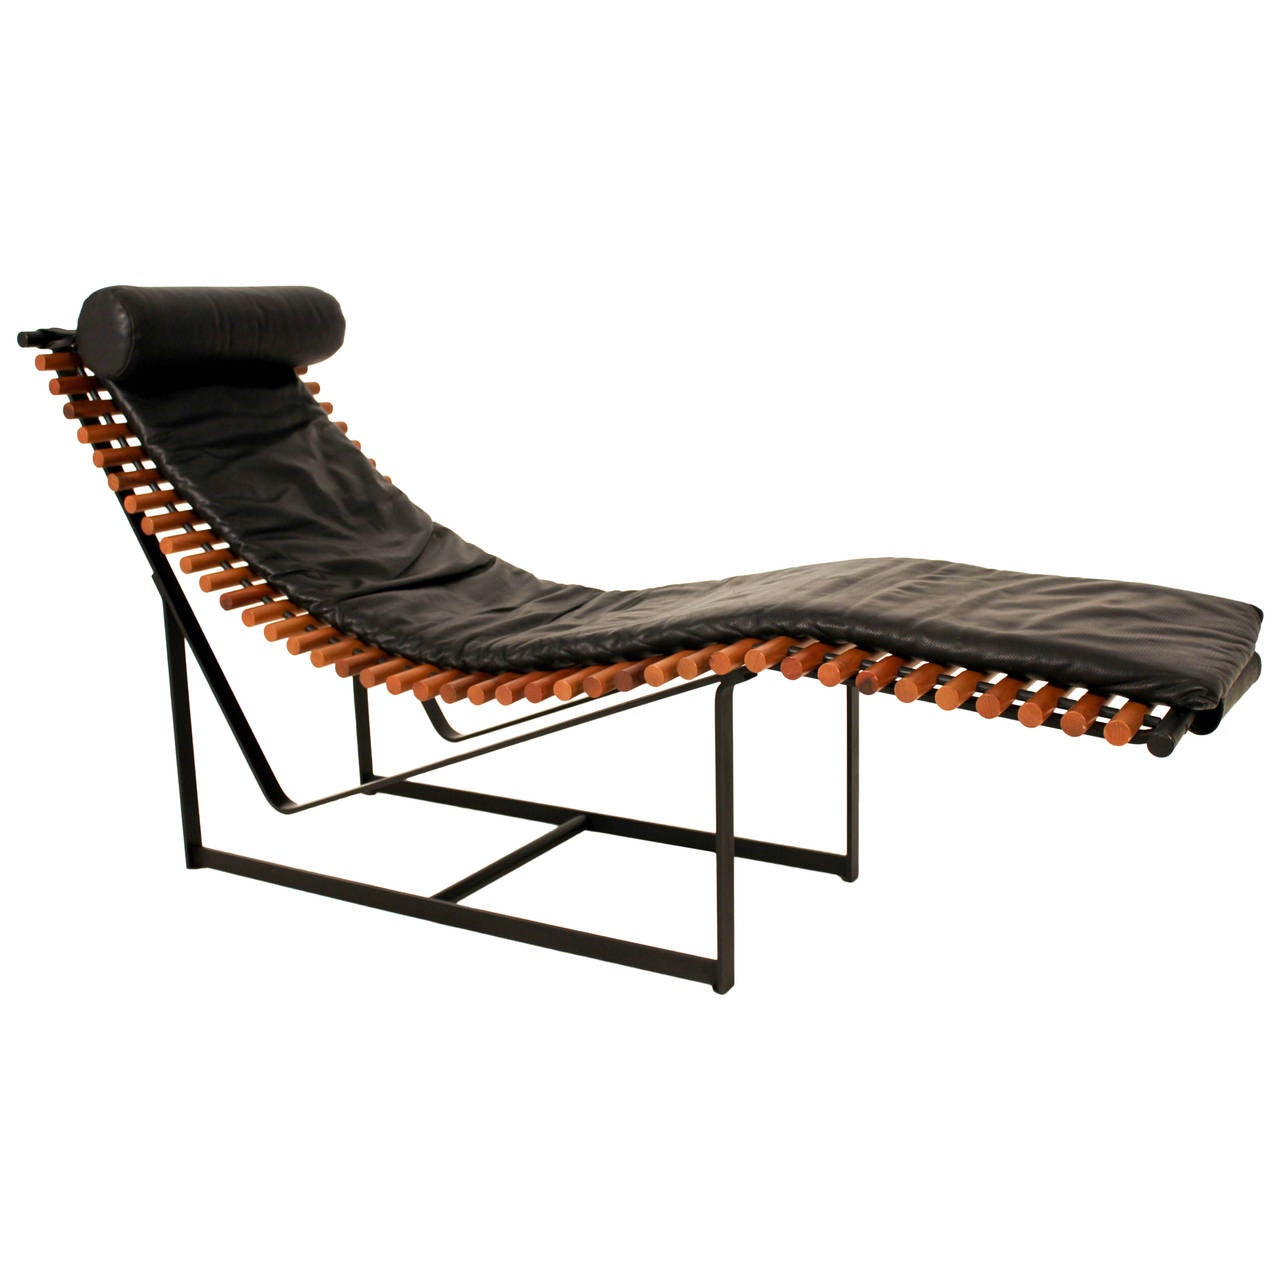 Funky mid century modern chaise longue 1970s for sale at for Chaise longue furniture